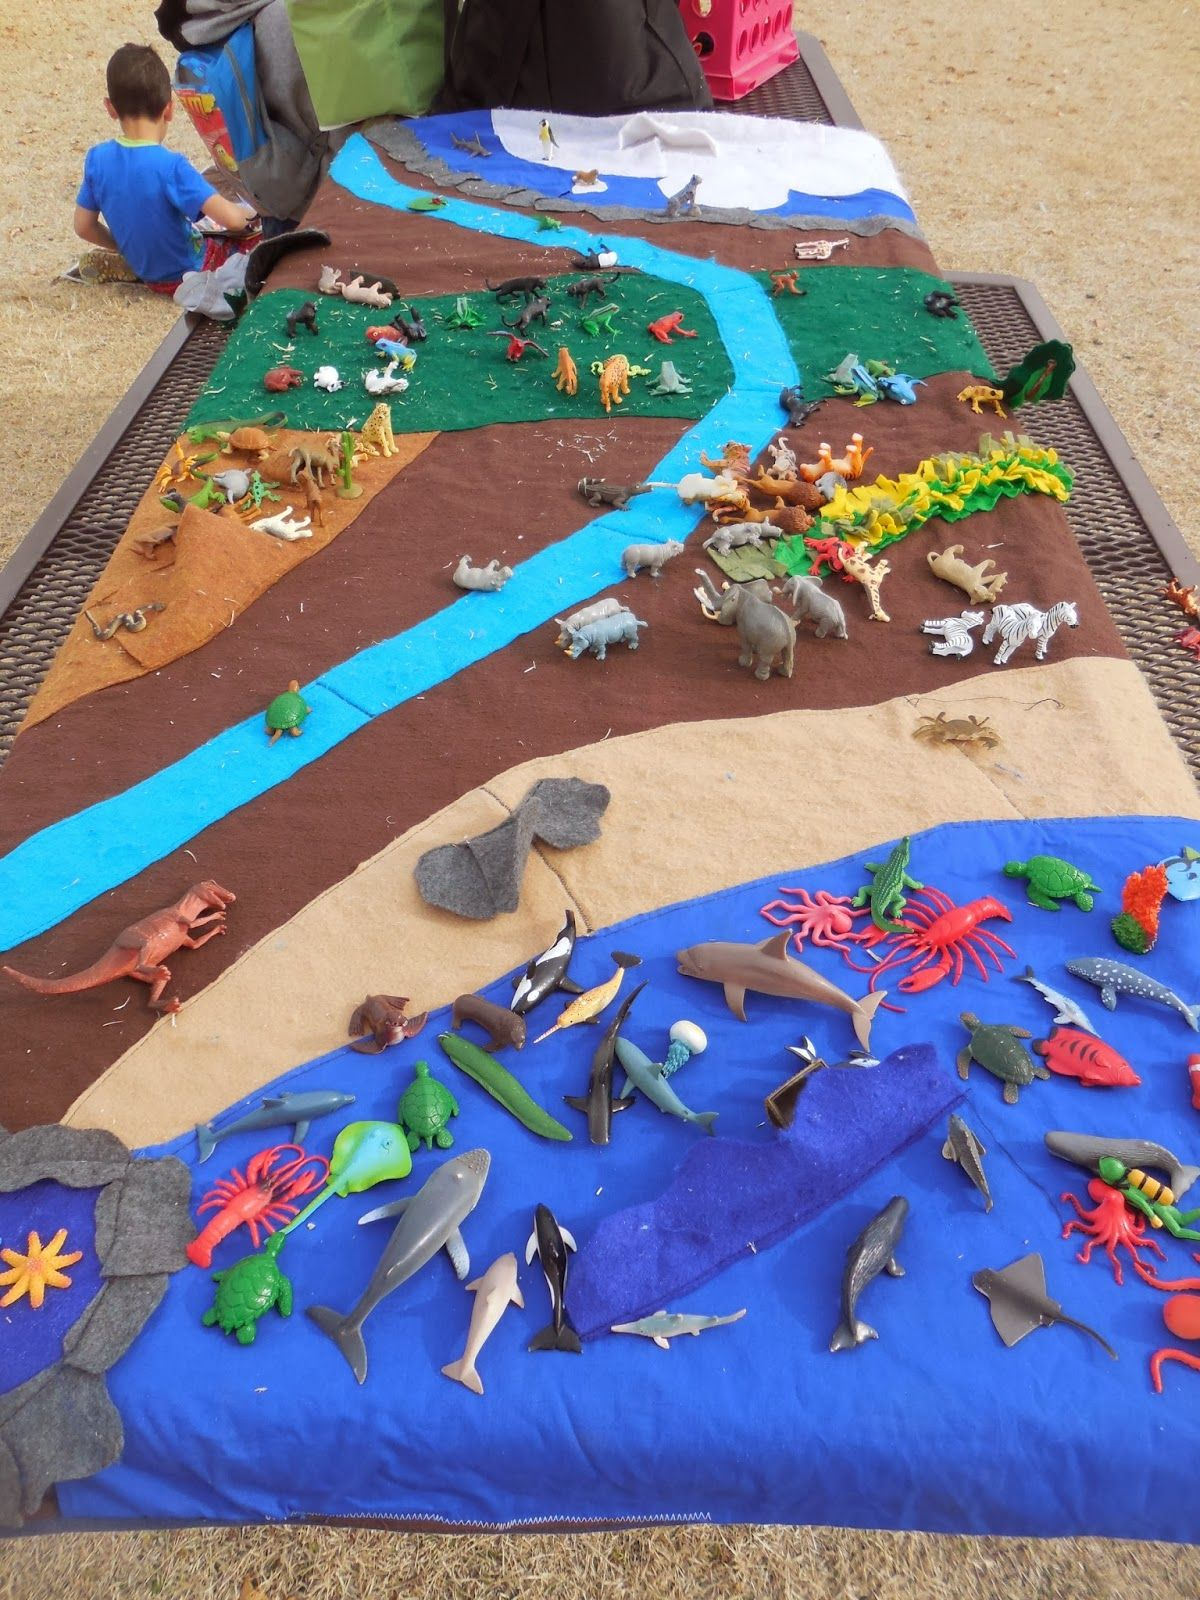 Animal Habitats I Think This Would Be A Challenging Sorting Game I Like The Idea Of Comparing